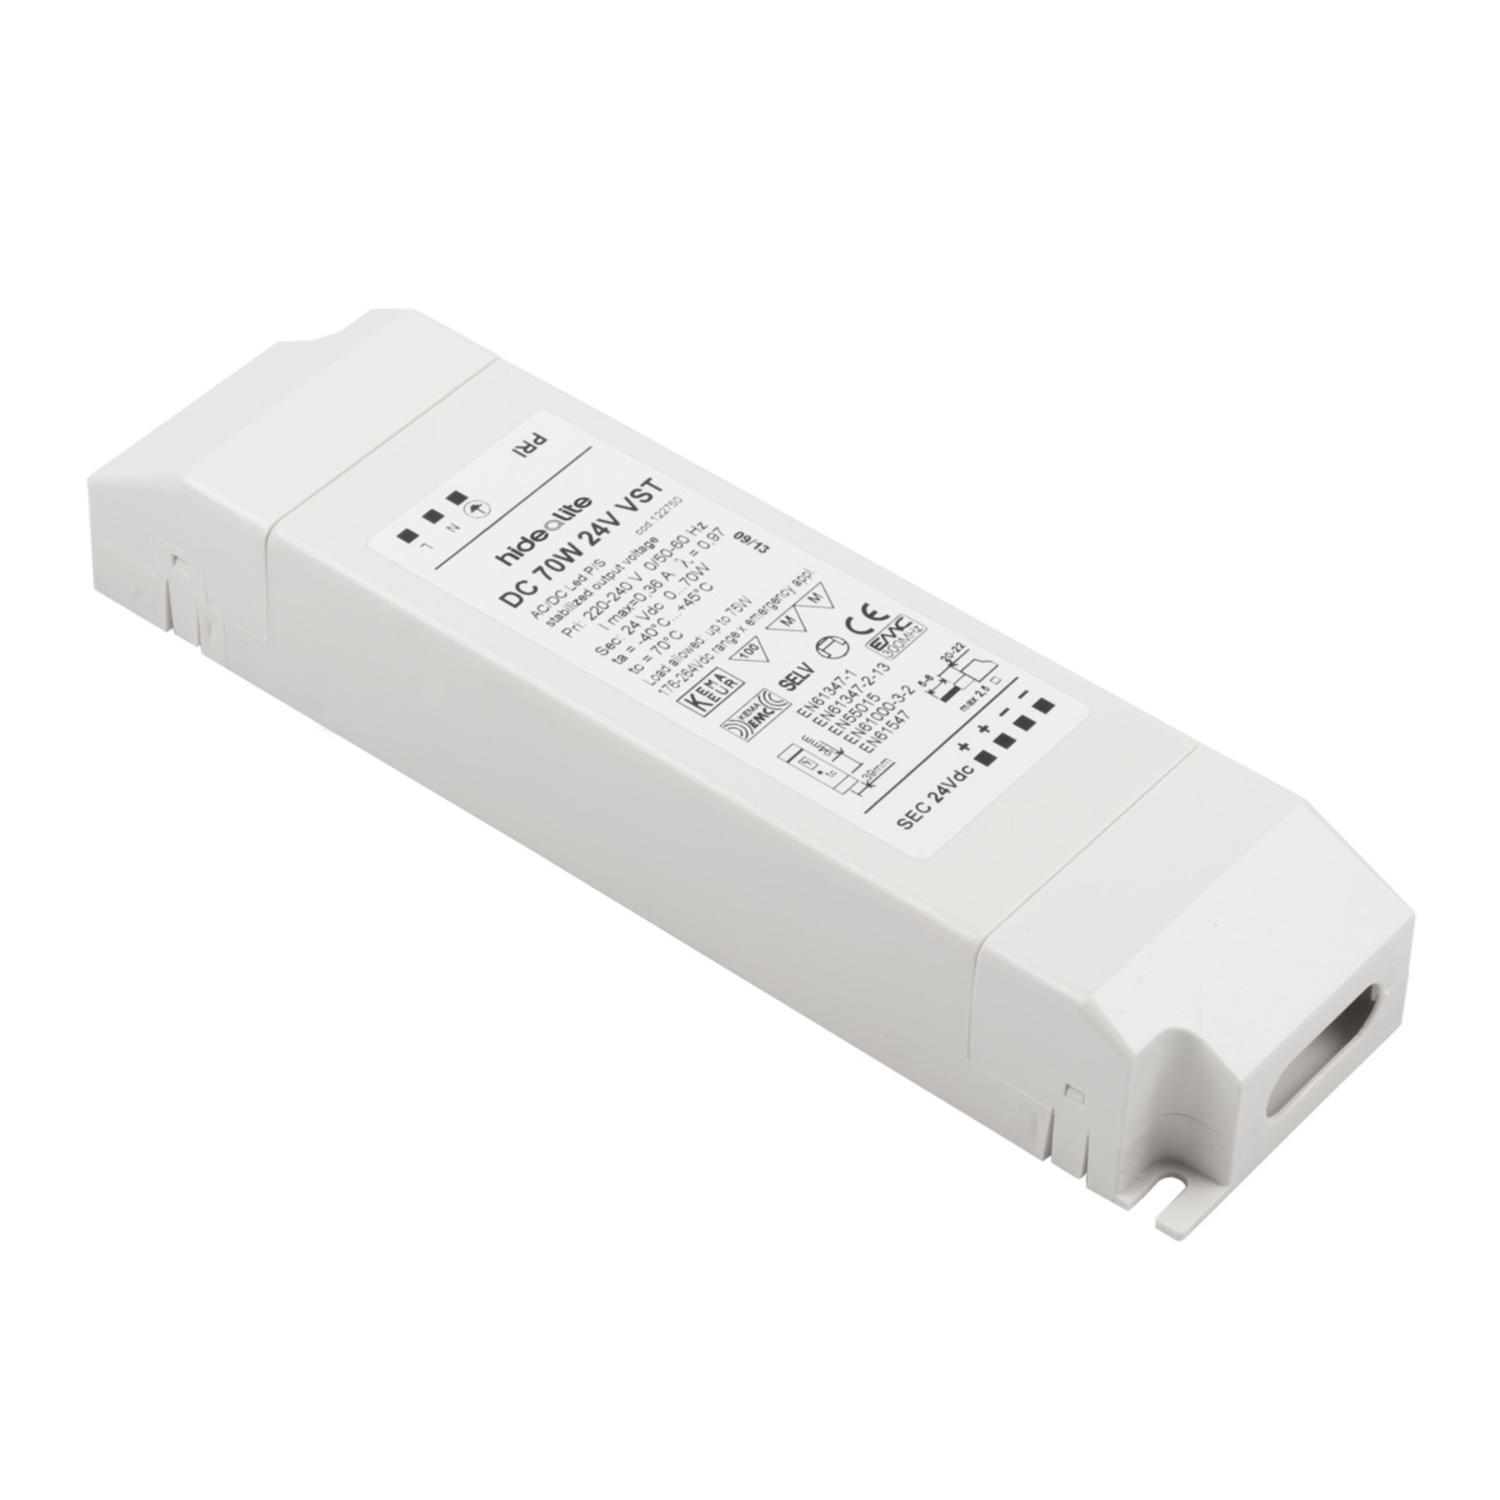 LED-muuntaja VST 24VDC 70W